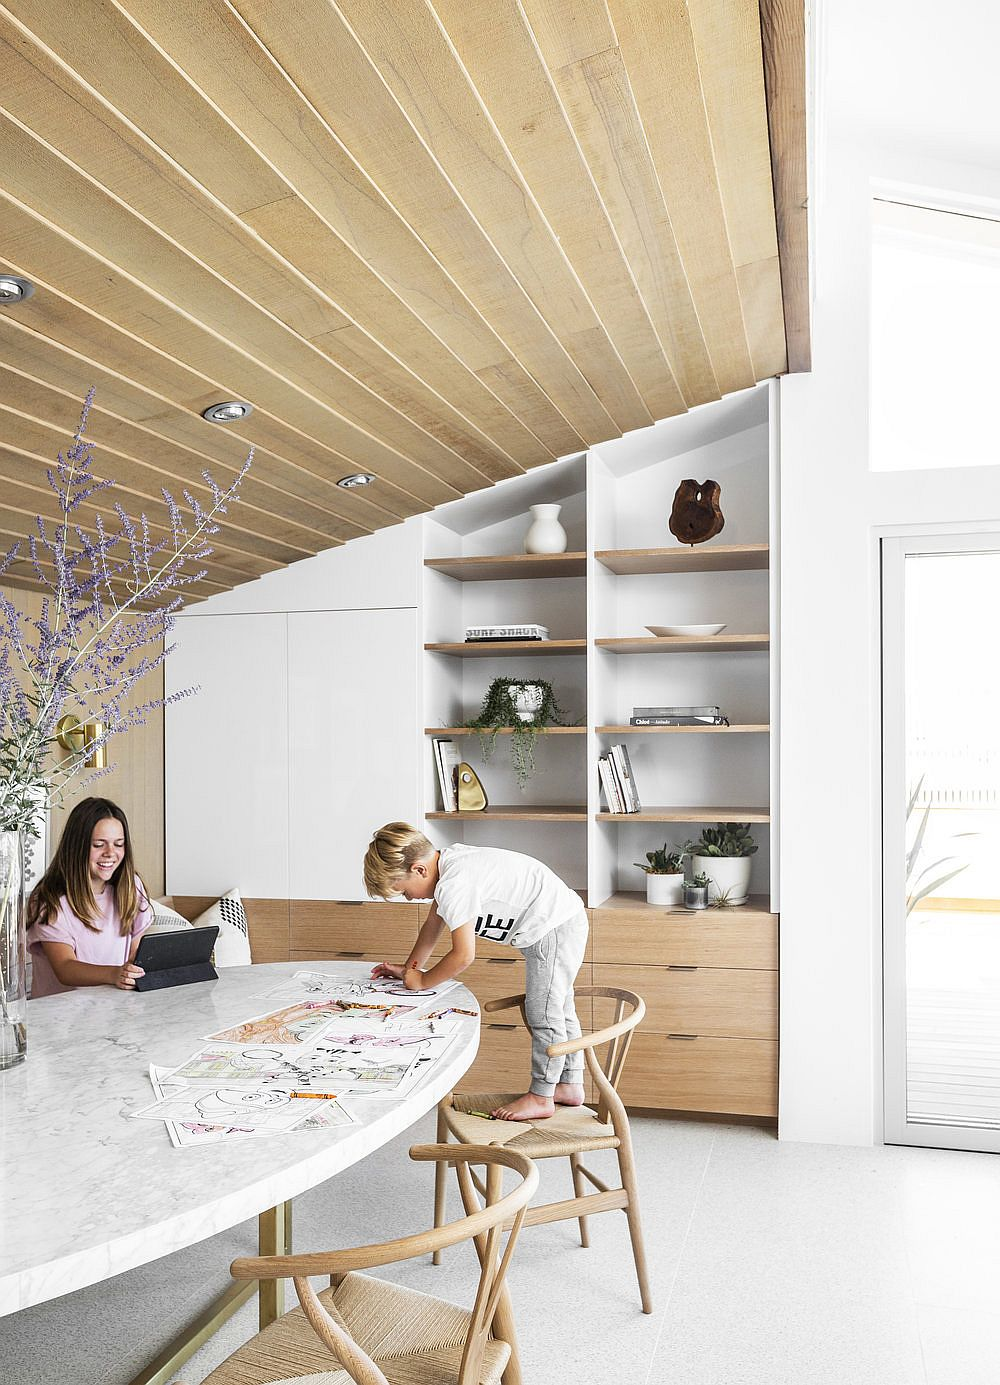 Dining-room-of-the-house-in-white-and-wood